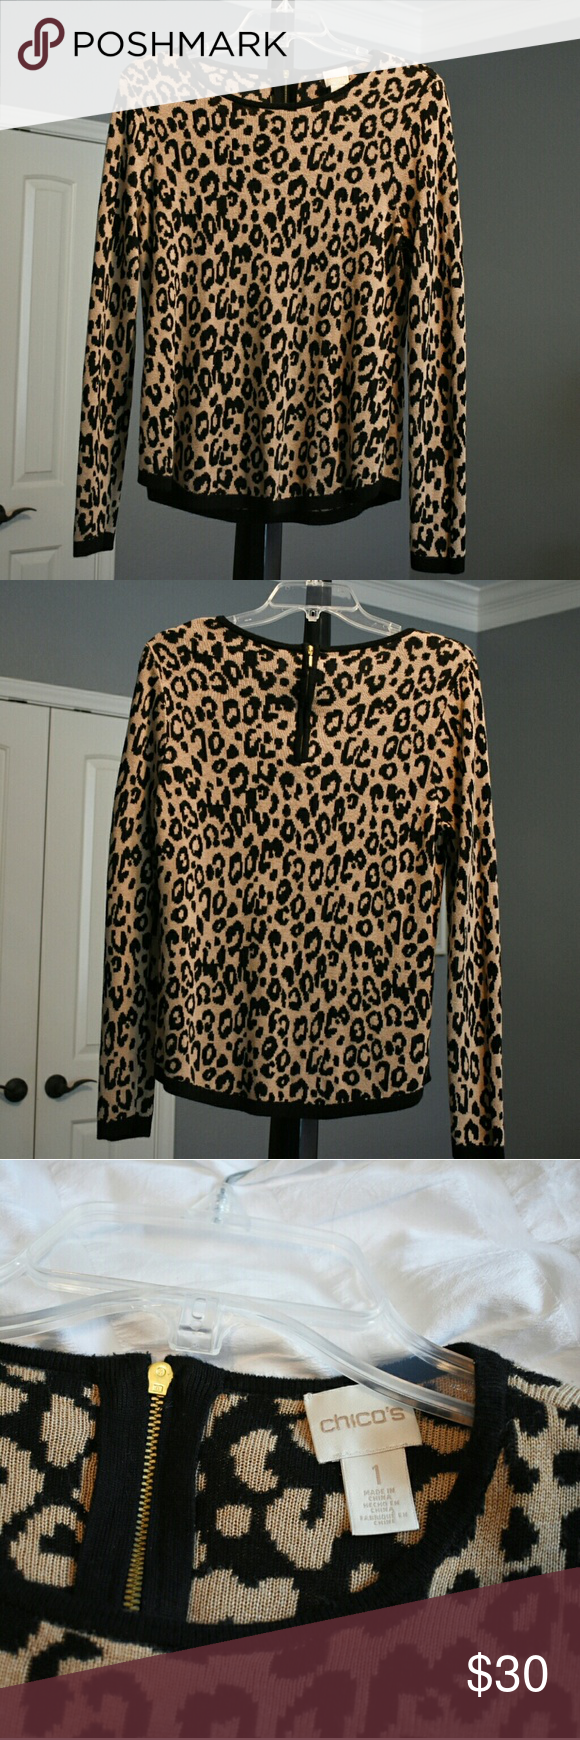 Chico S Animal Print Pull Over Sweater Leopard Print Sweater Sweaters Print Pullover [ 1740 x 580 Pixel ]